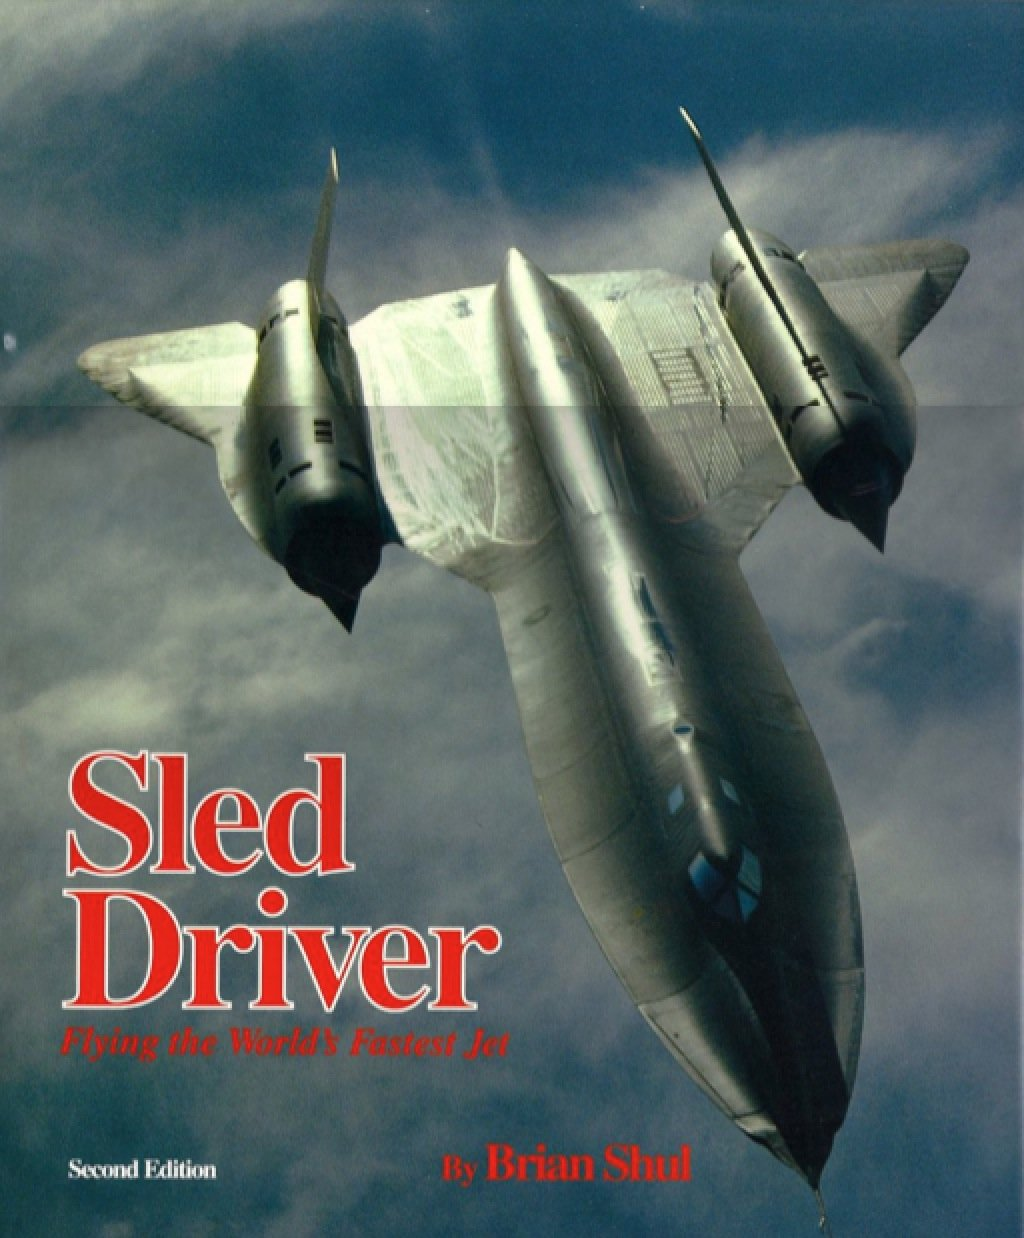 Fastest Jet In The World >> Sled Driver Flying The World S Fastest Jet Brian Shul Sheila